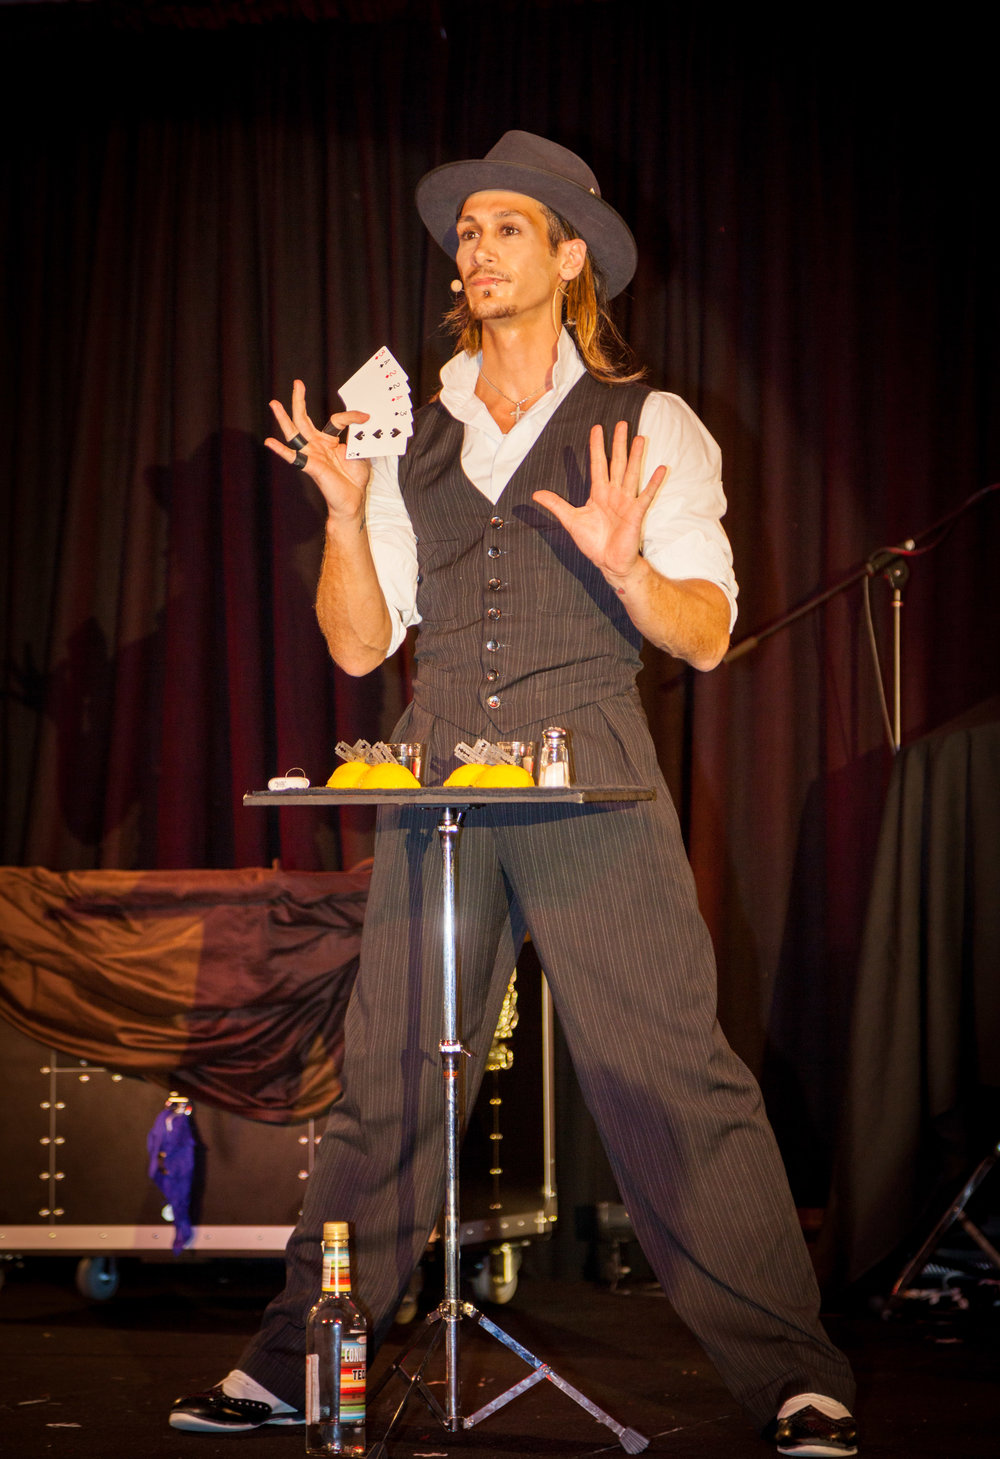 Magician Cosentino at RACQ Lifeflight Gala Ball